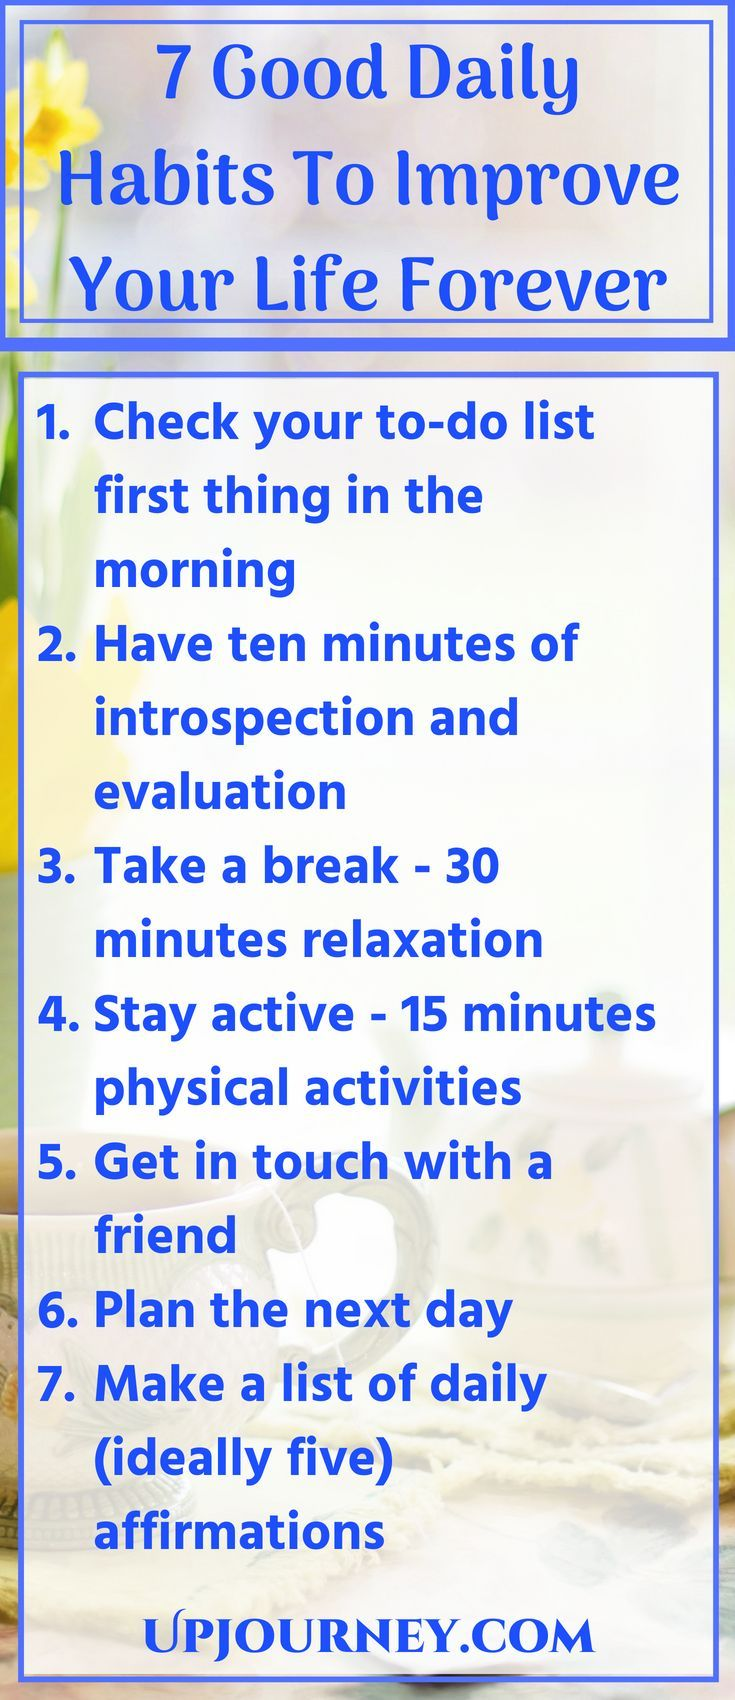 Good Habits And Daily Routines Are Keys To Making Change In Your Life If You Are Wanting To Improve Yourselkf These Habit Change Tips Can Help You Make